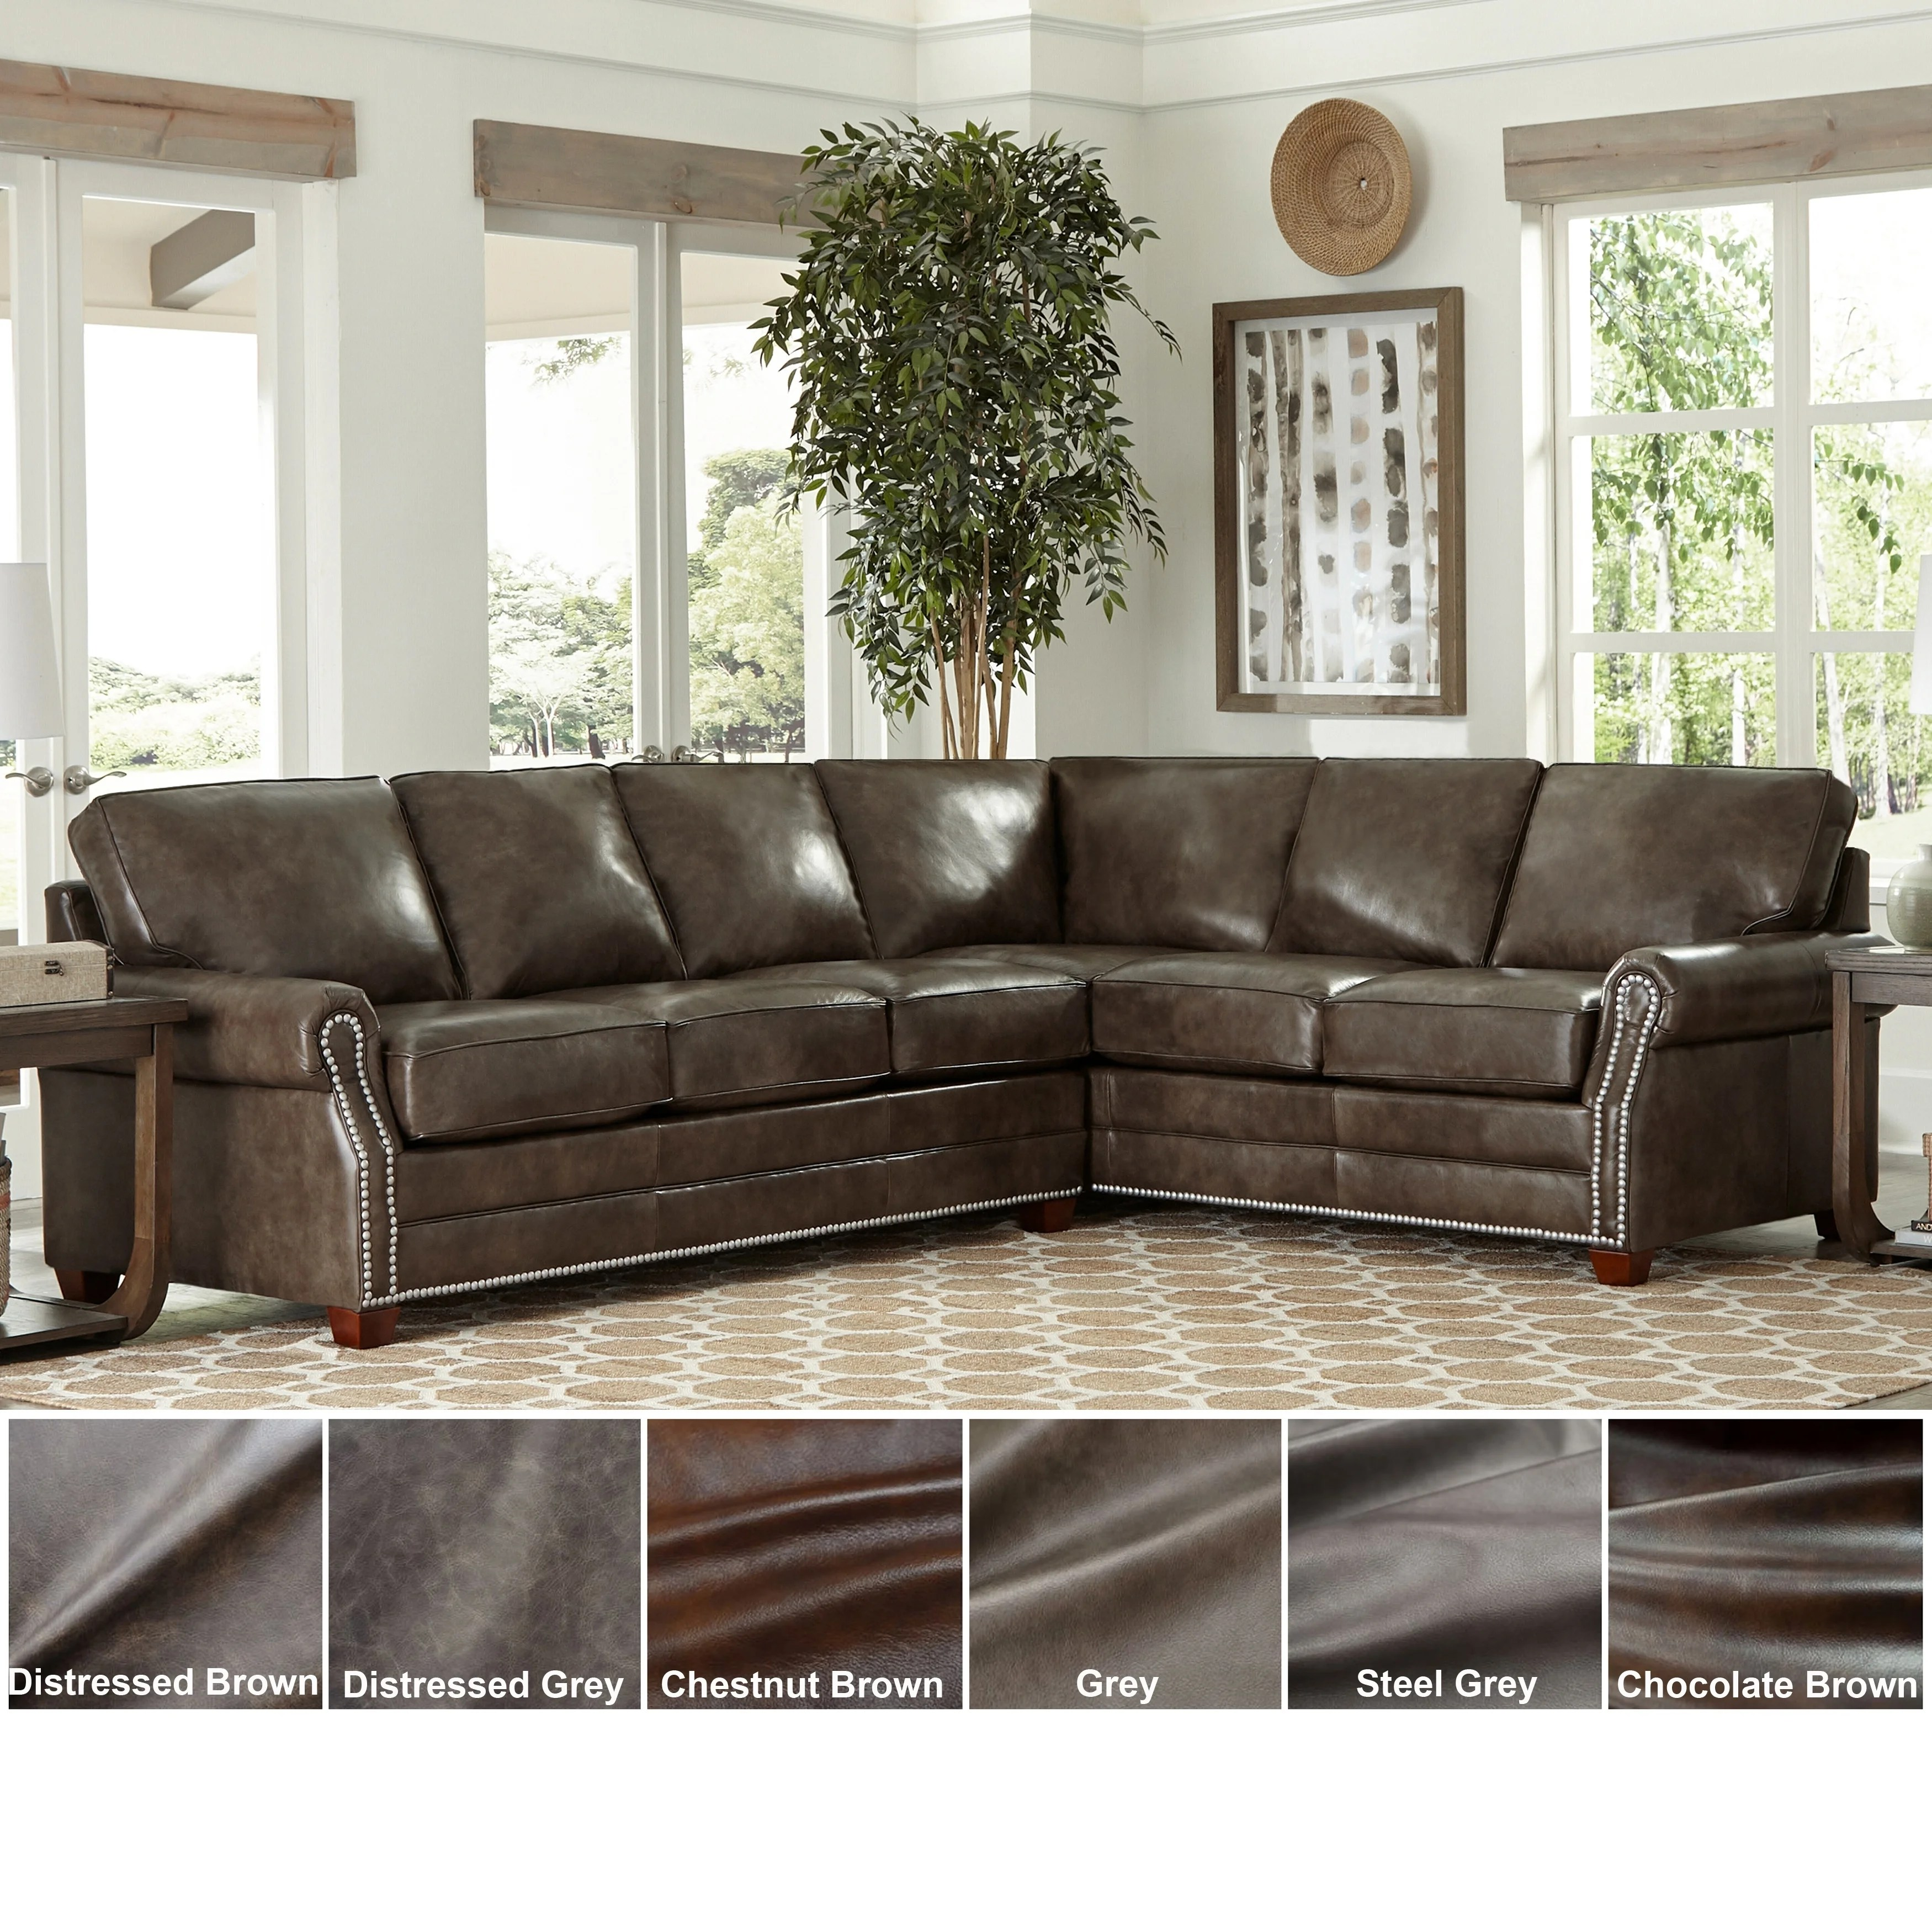 made in usa davis top grain leather sectional sofa bed sleeper